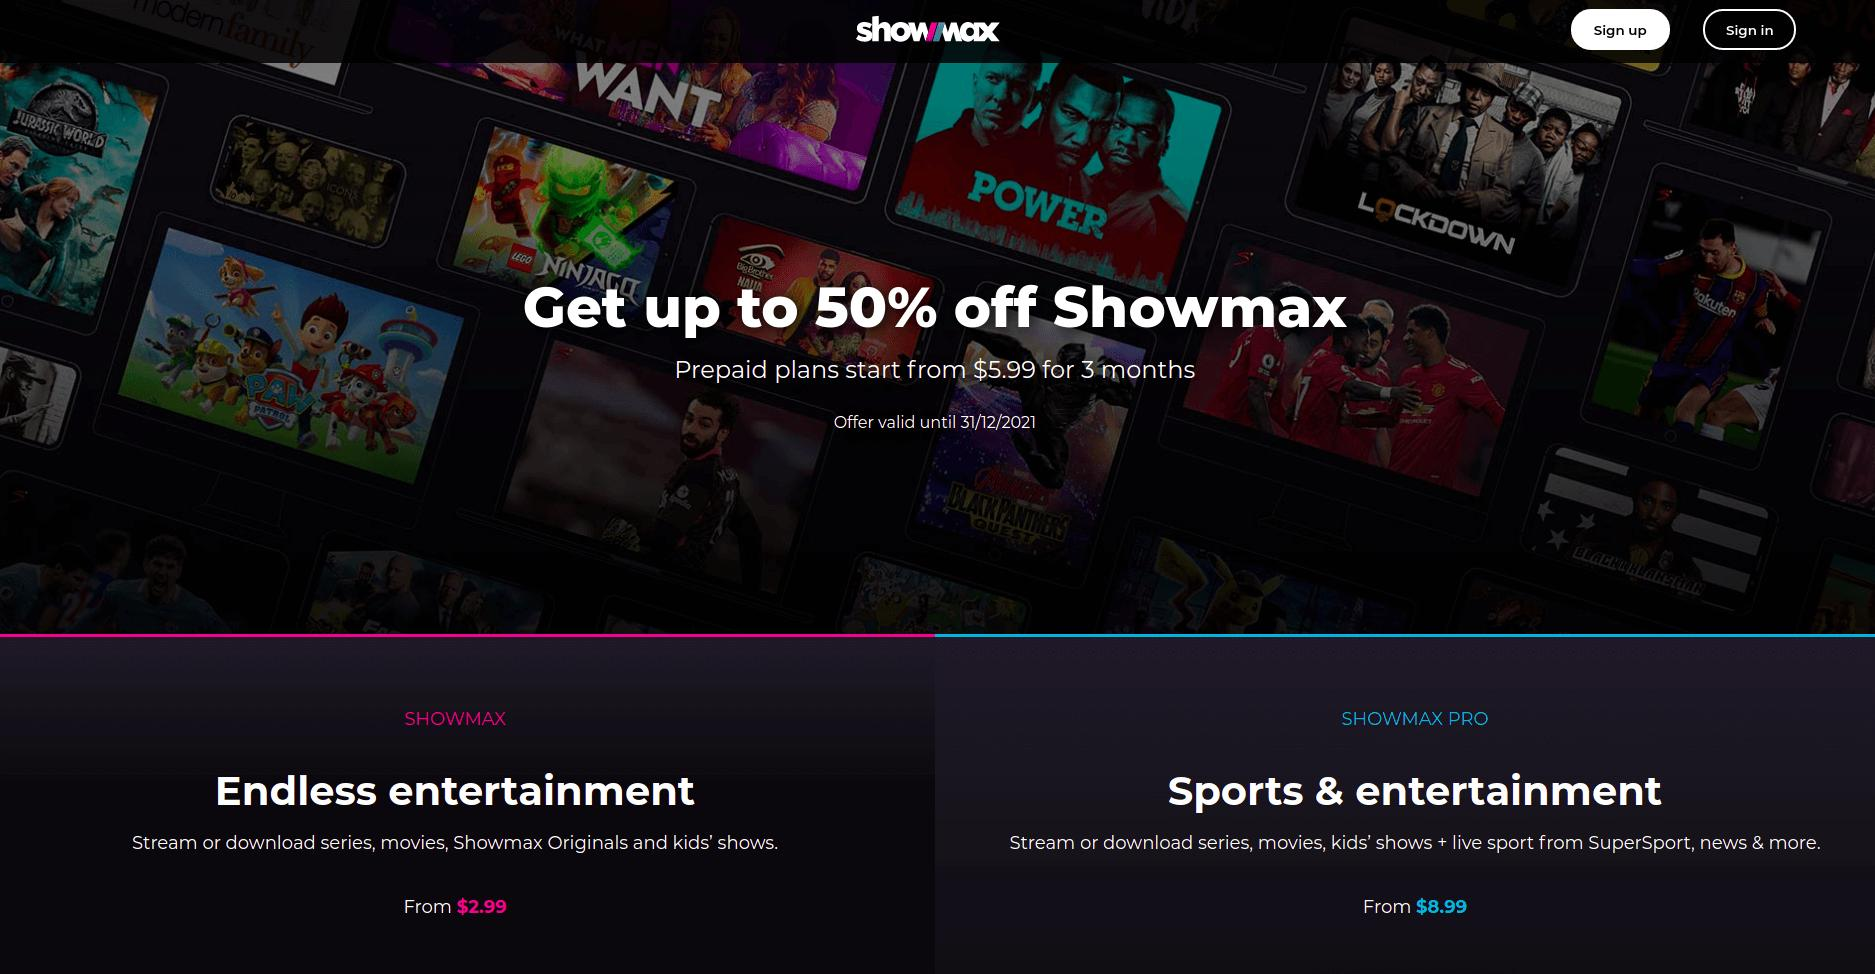 Showmax mobile price reduced to US$2.99